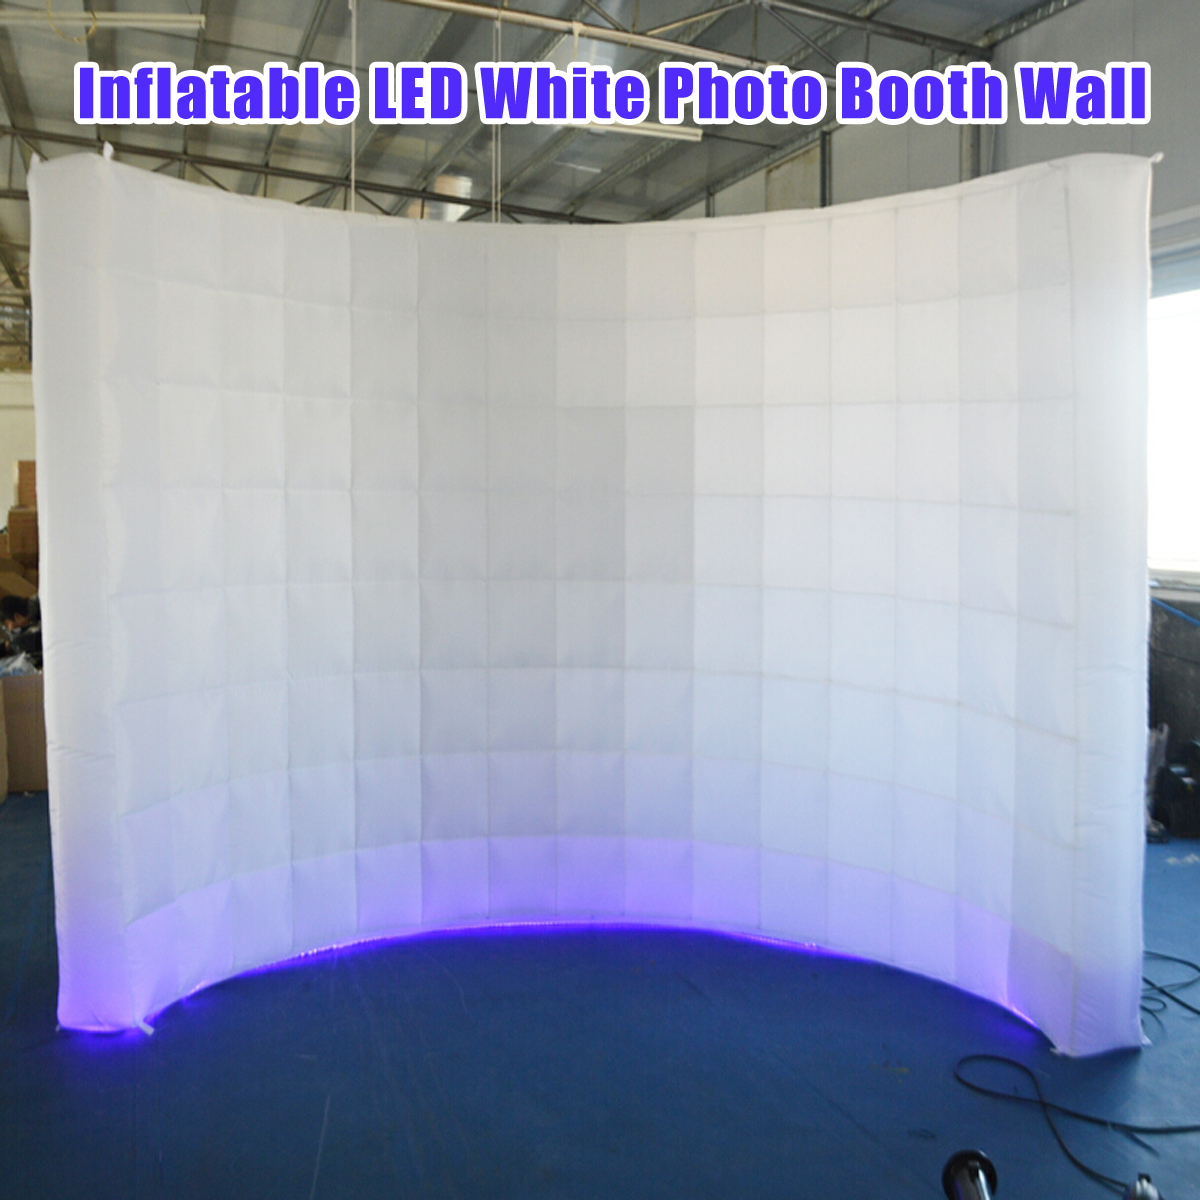 3x1.5x2.3m Oxford cloth Inflatable LED White Photo Booth Background Wall Shooting Tent